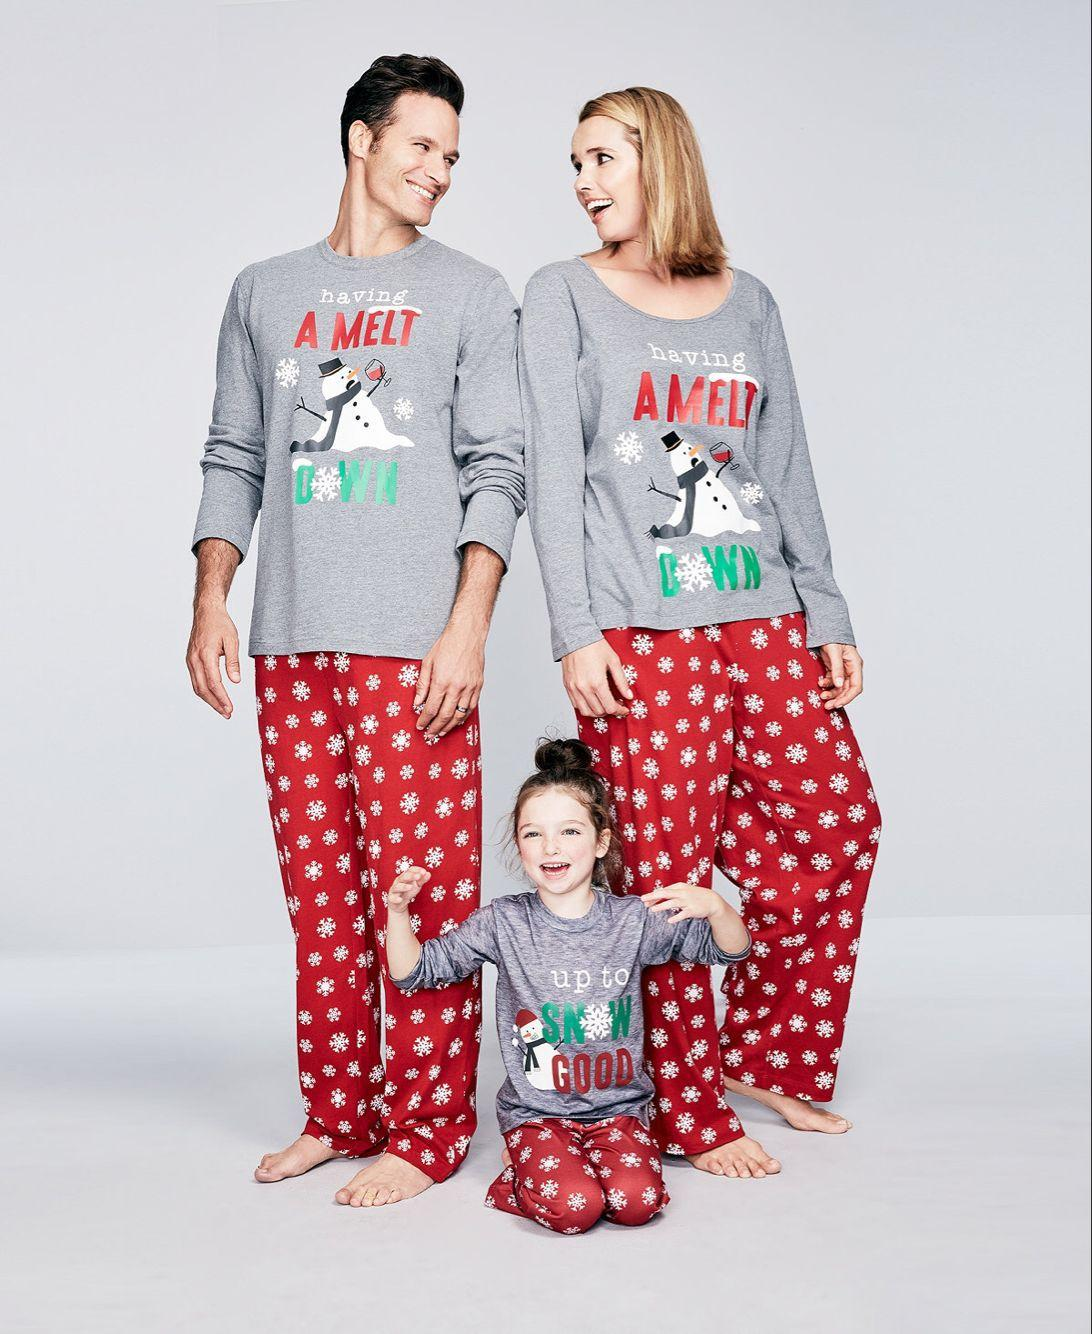 16c99bb11ca9 Family Matching Christmas Pajamas Set Up To Snow Goodandhaving A Melt  DownTops And Long Pants Sleepwear For Family Matching Shirts For Family  Family ...